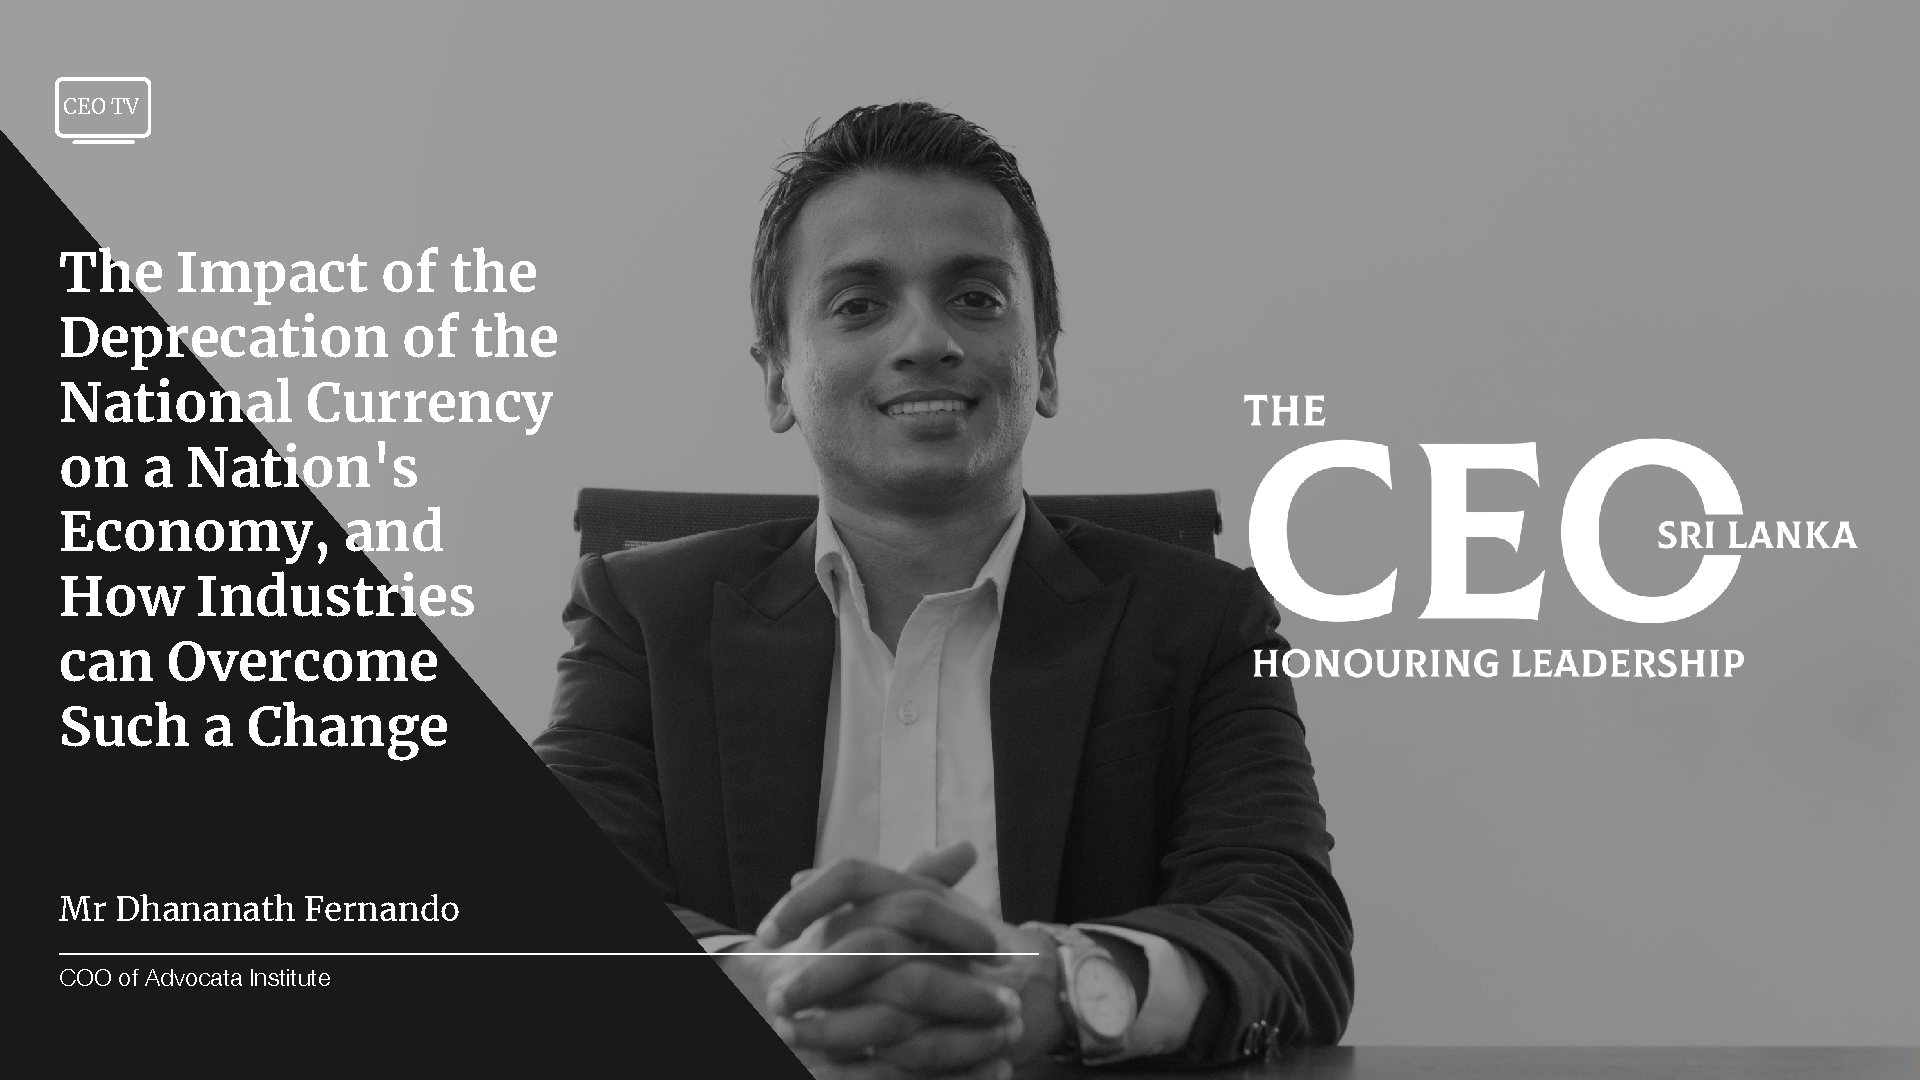 An Interview with Dhananath Fernando, COO of Advocata Institute.